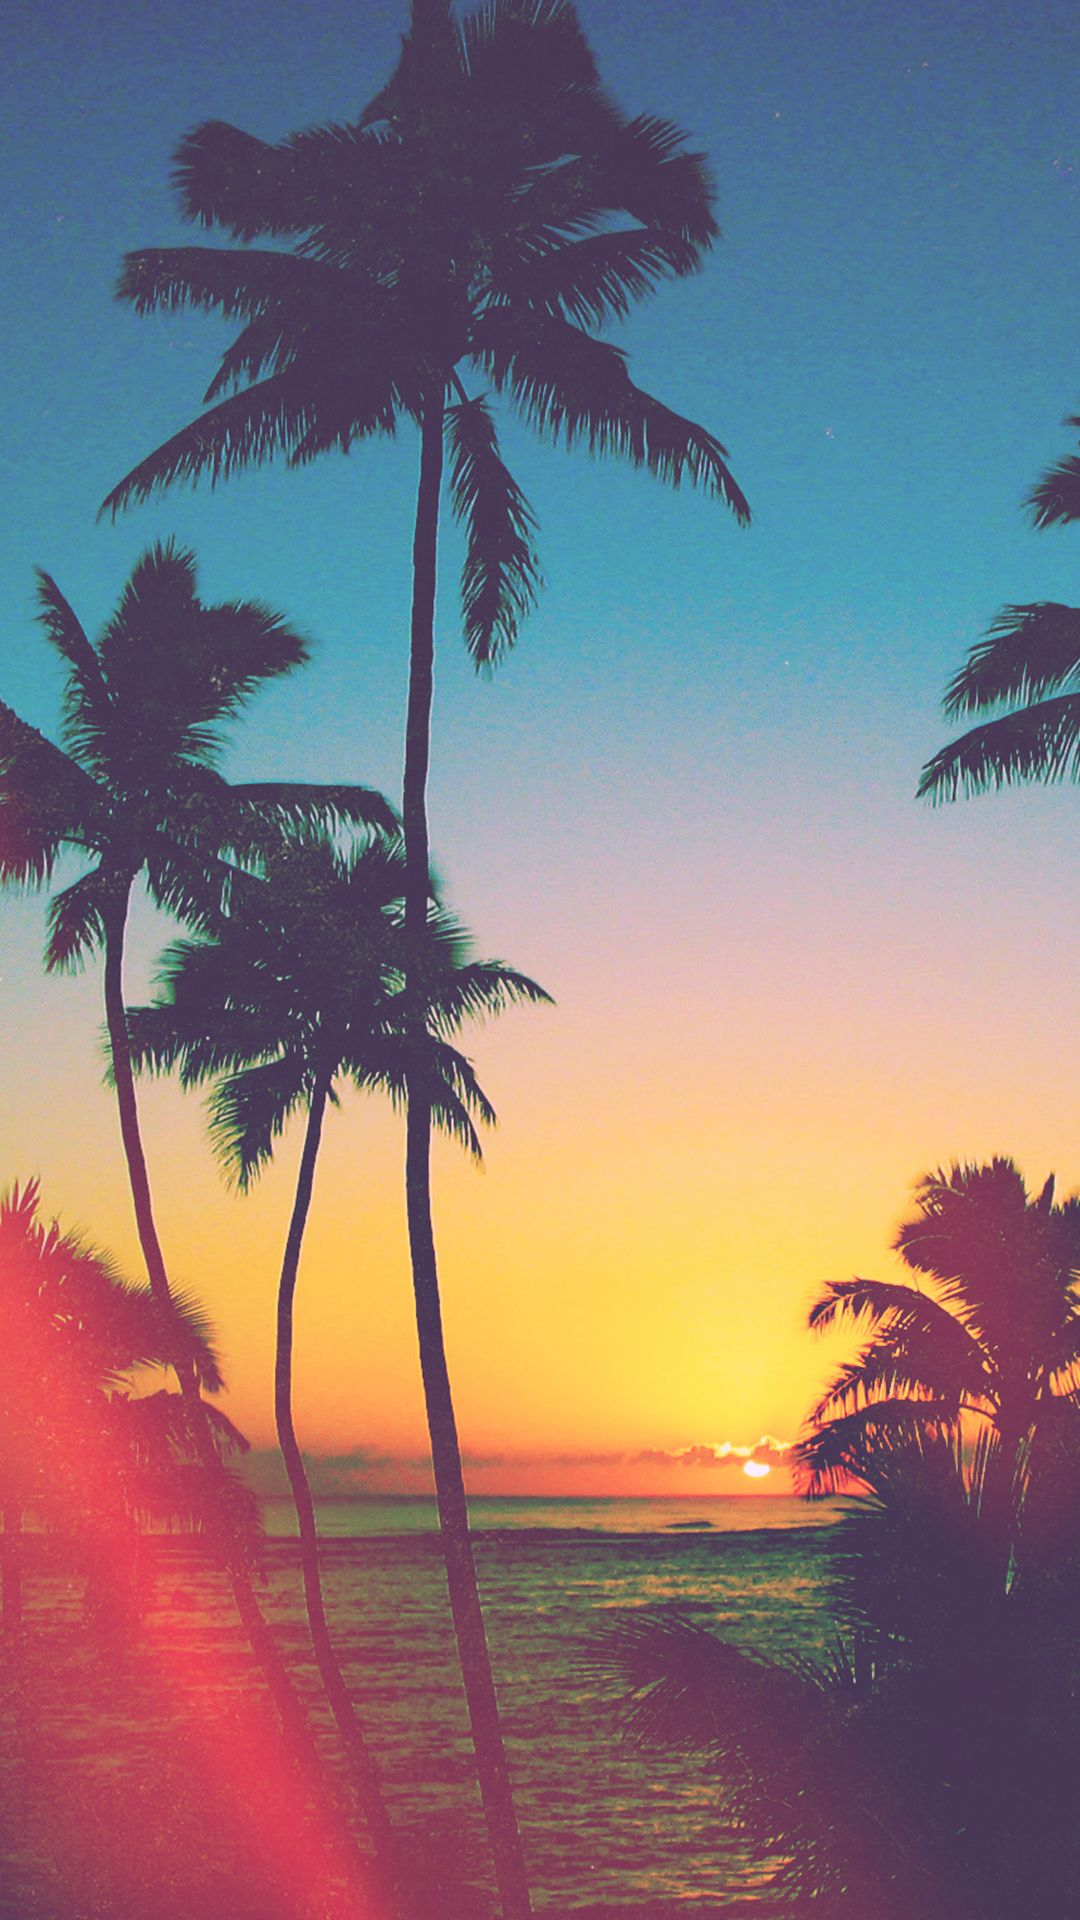 Tropicool iPhone 5/6 Wallpapers Graphic and Web Design